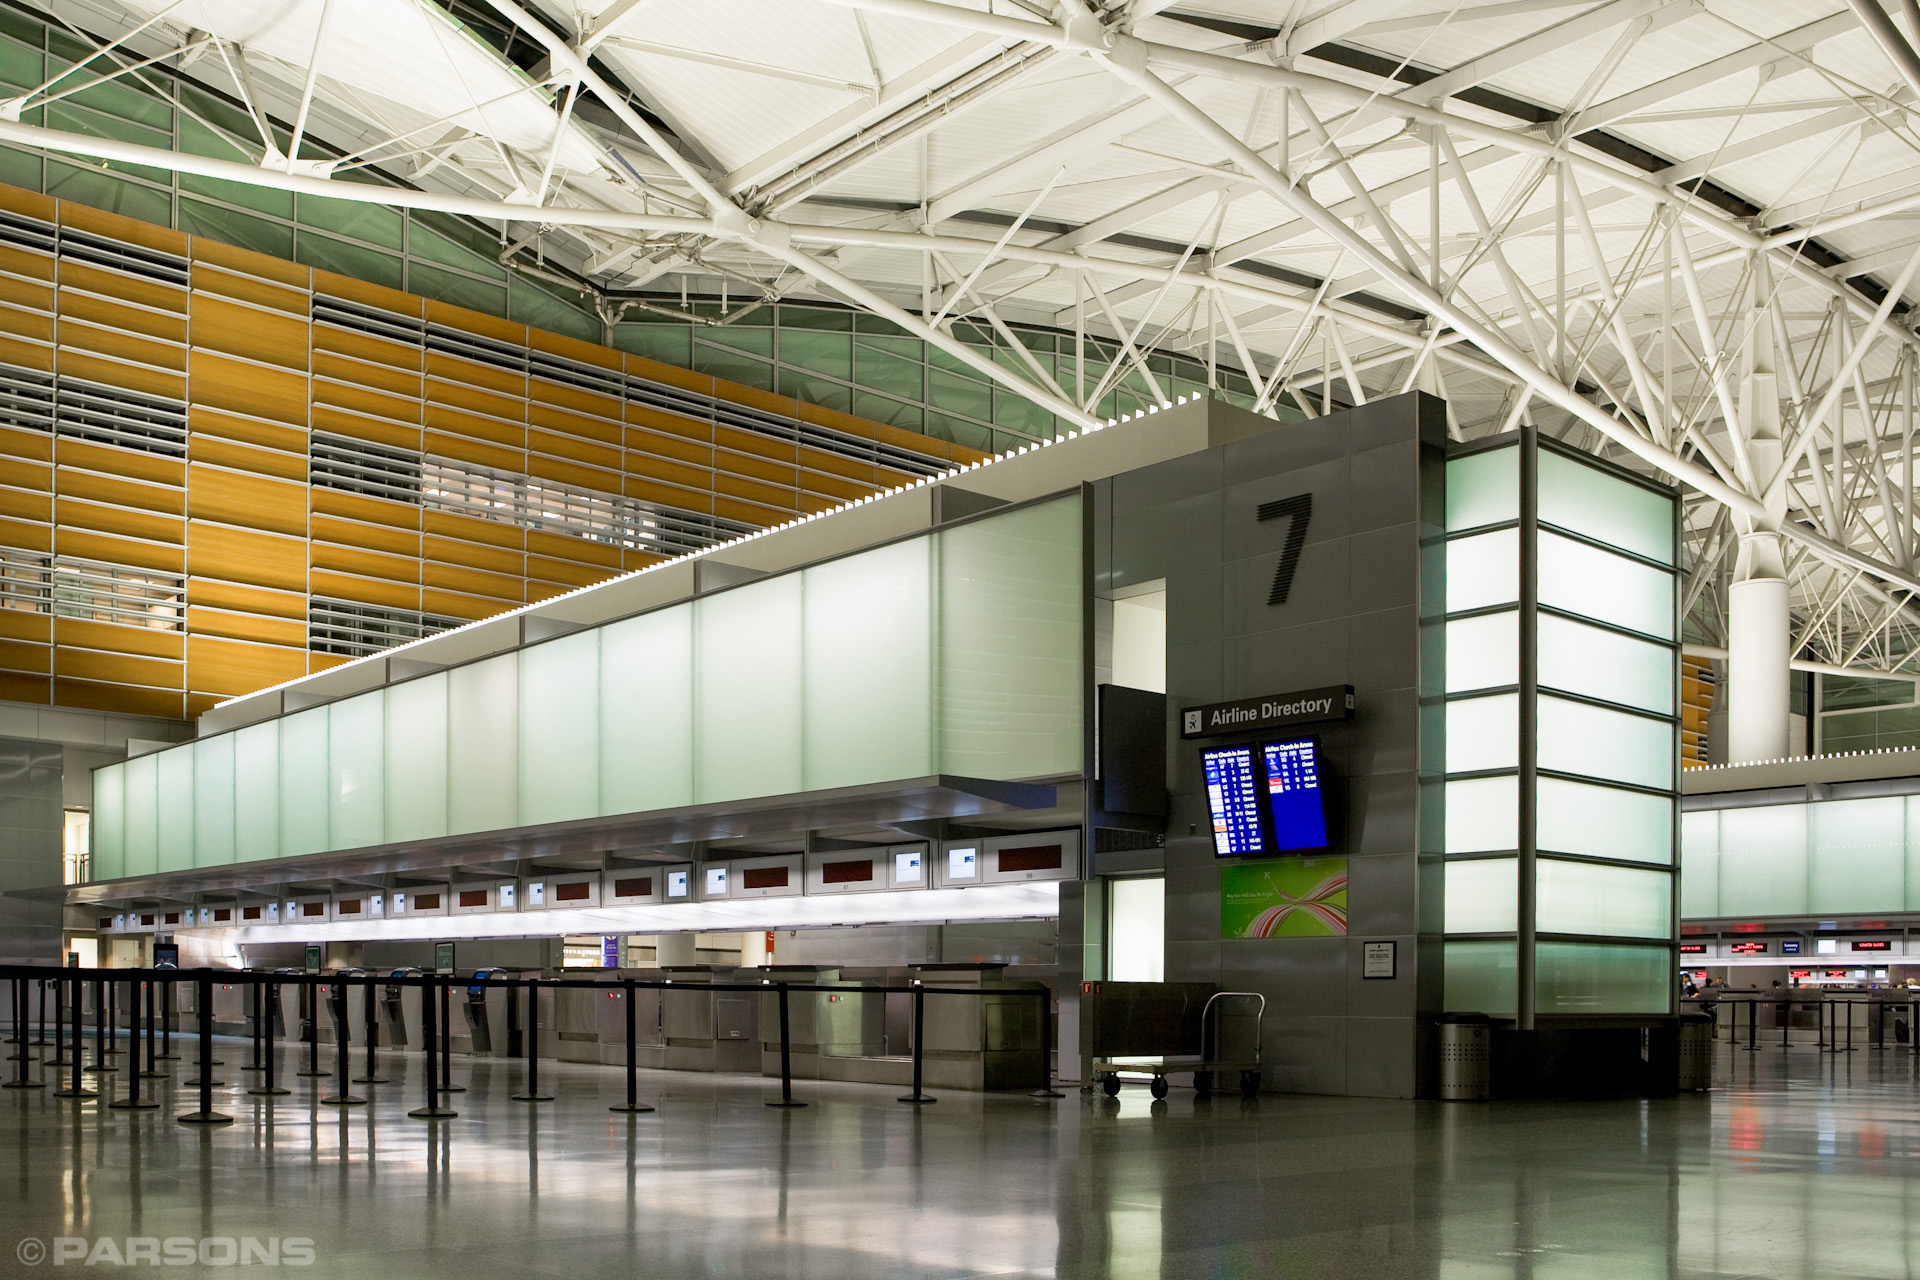 Civil-Engineering-SFO-San-Francisco-Airport-California-Interior.JPG